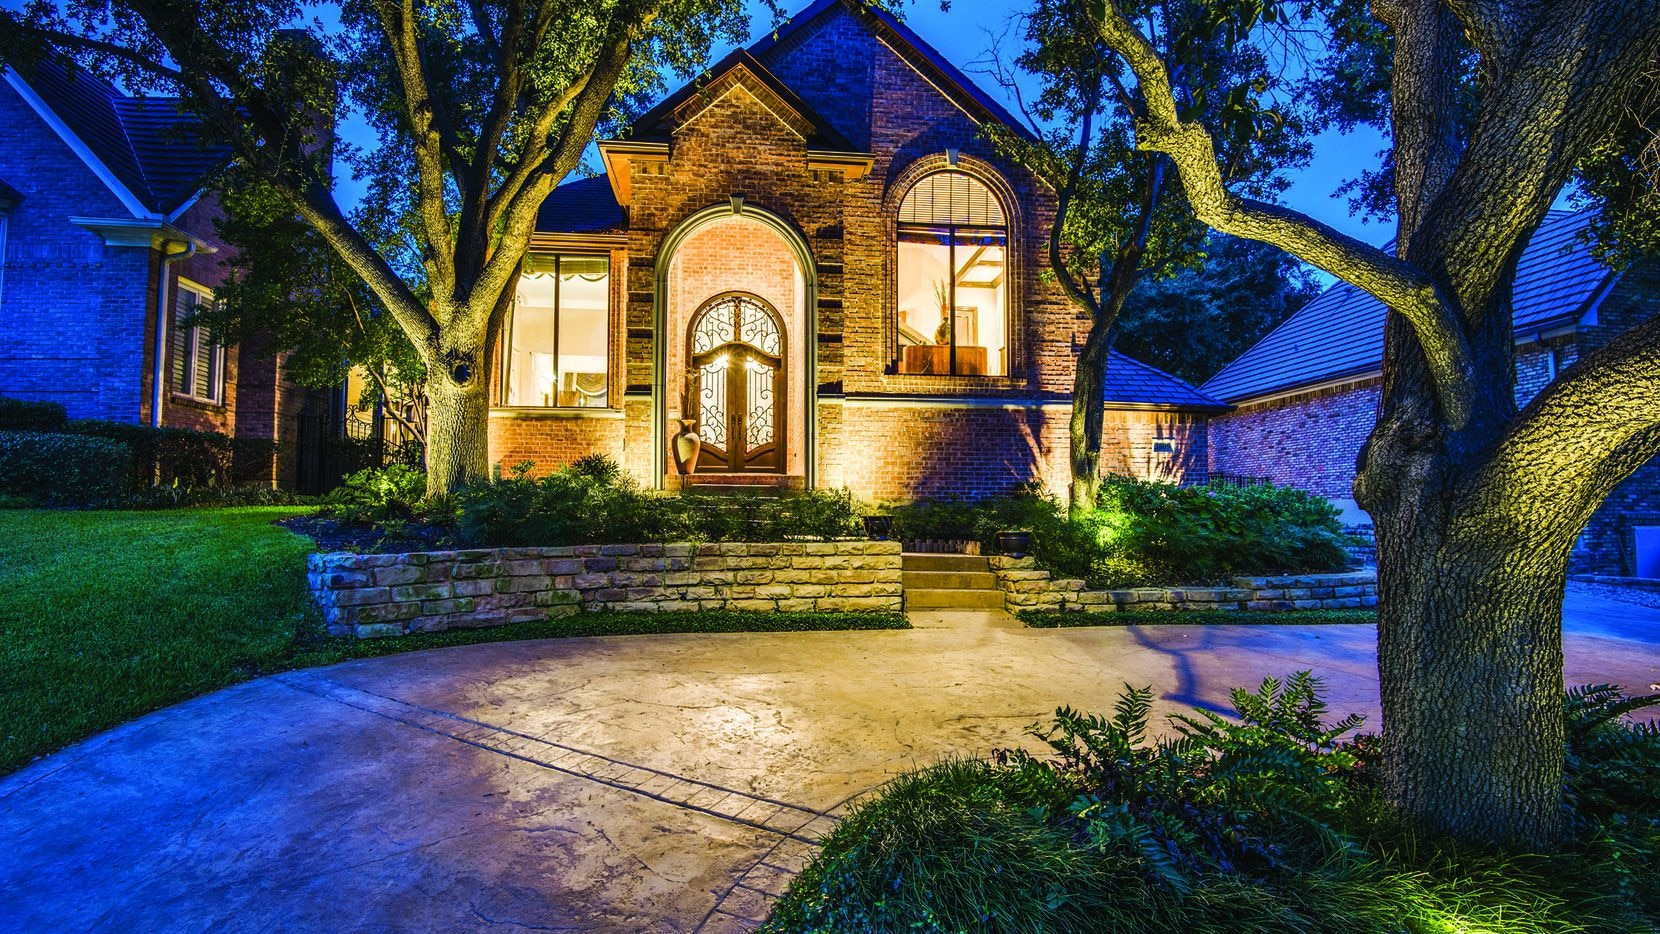 The four-bedroom, three-bathroom residence at 3809 Fox Glen Drive in Irving will be held open from 2 to 4 p.m. today.